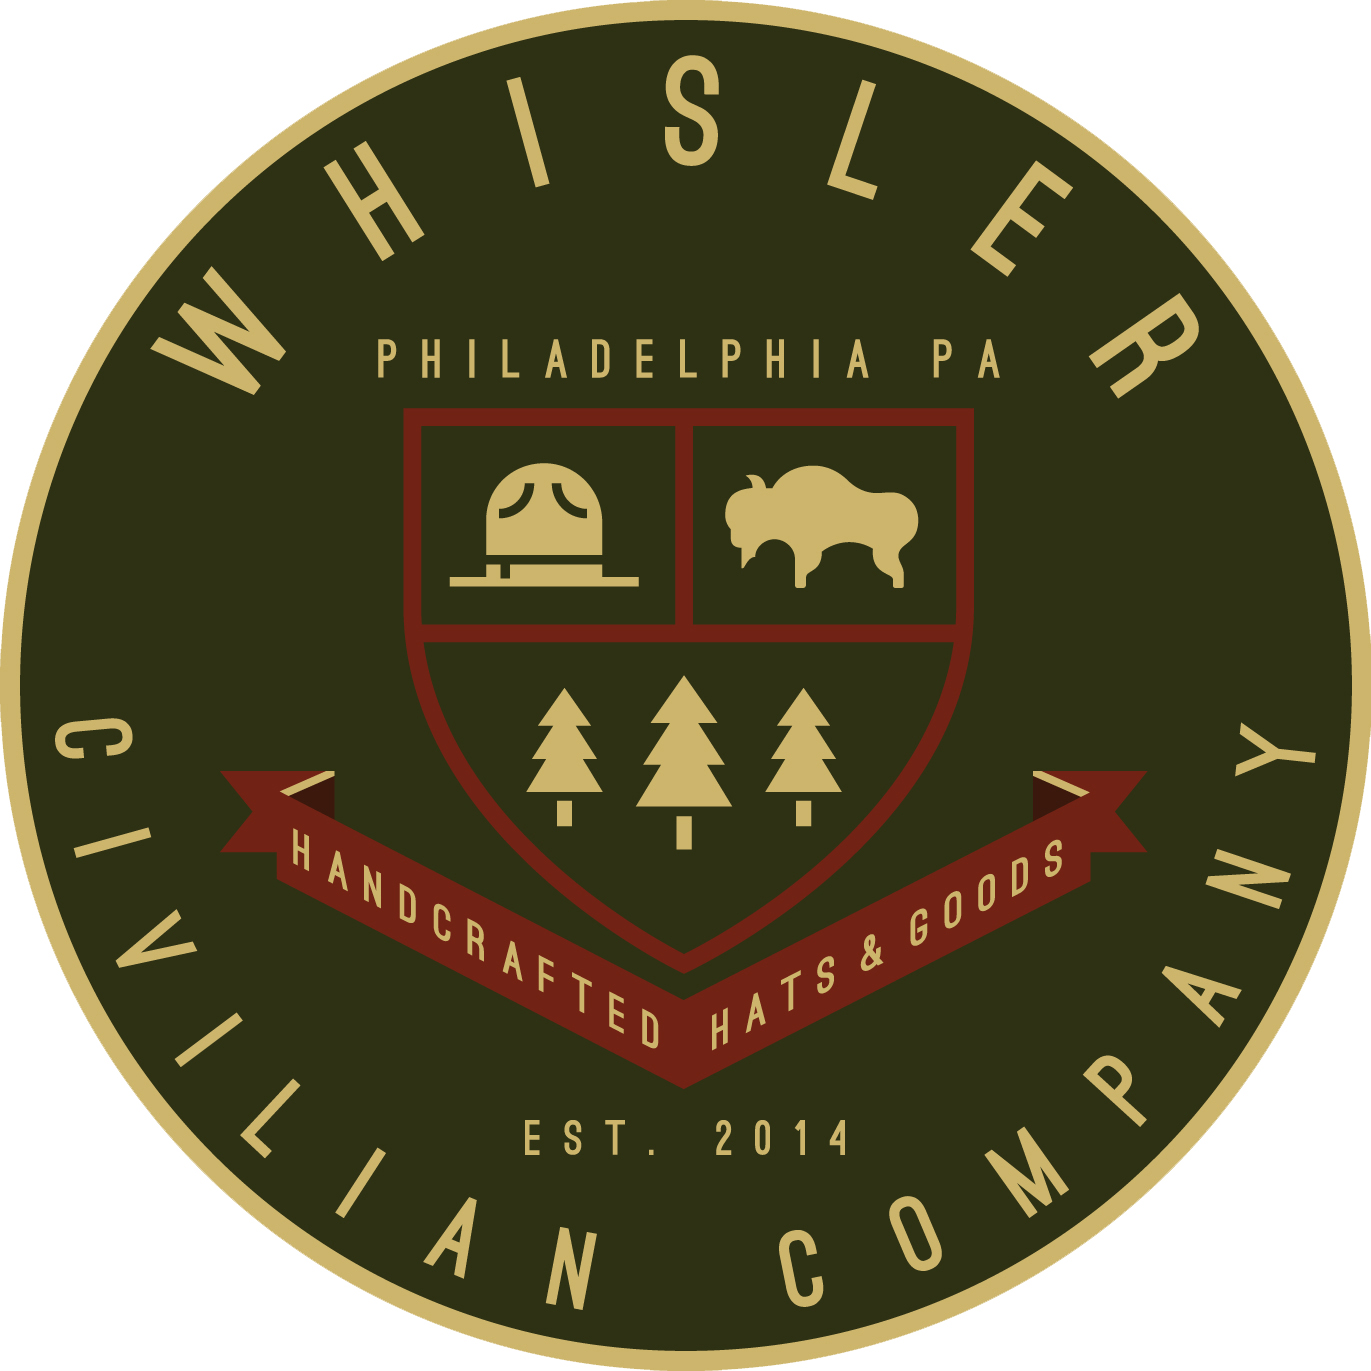 Whisler Civilian Co.